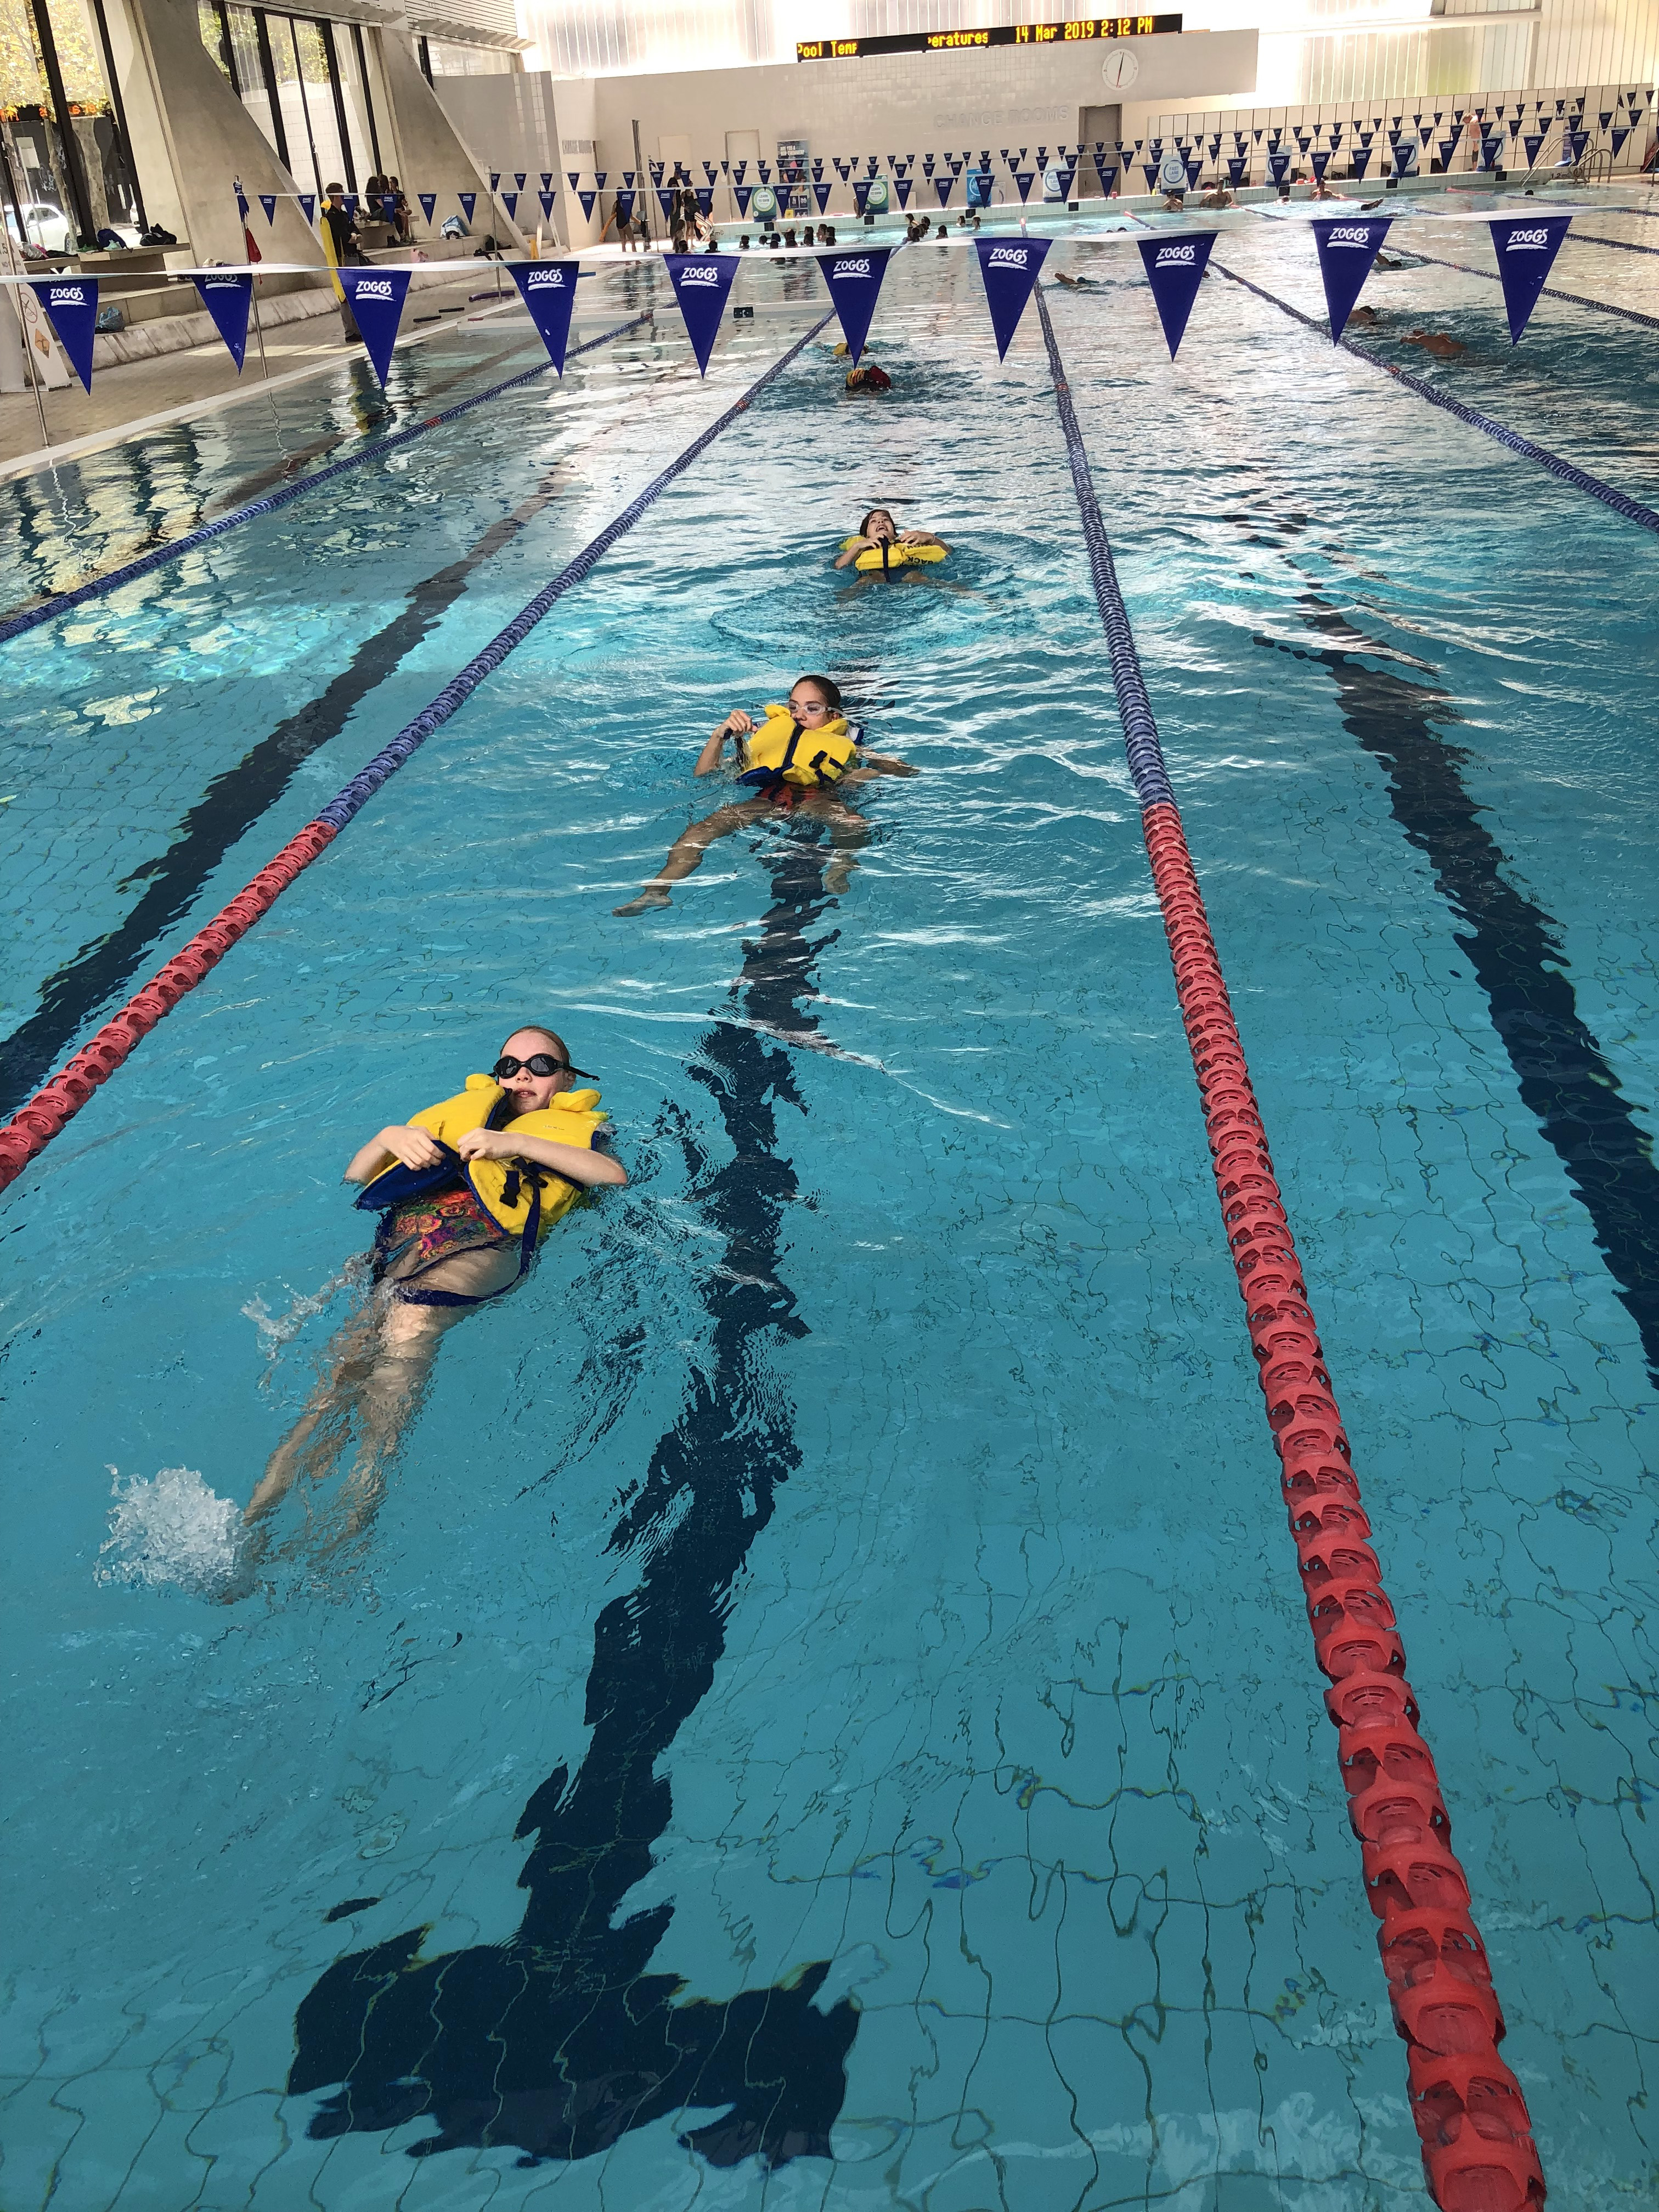 igs-water-safety-skills-group-in-pool-activities